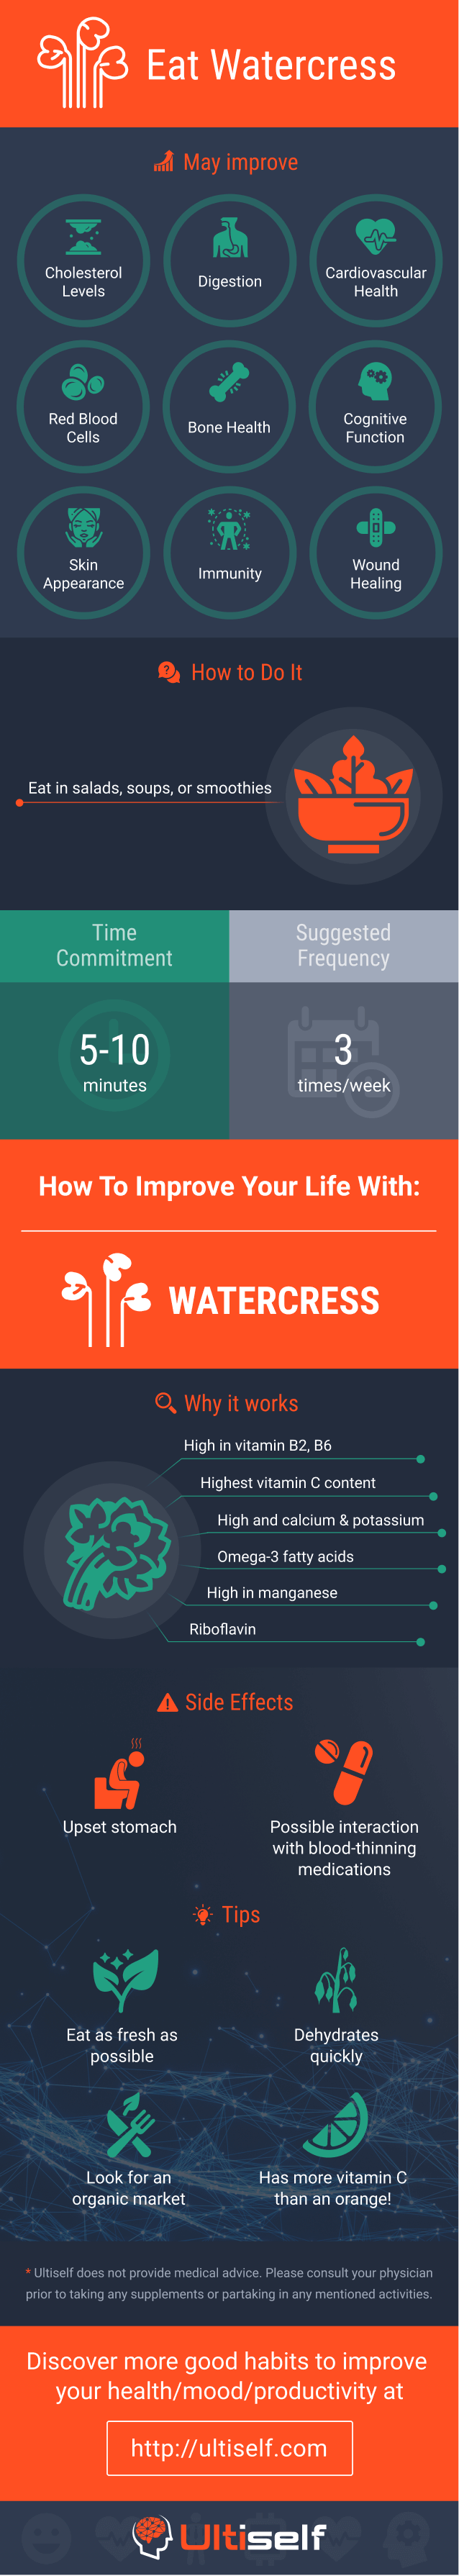 Eat Watercress infographic